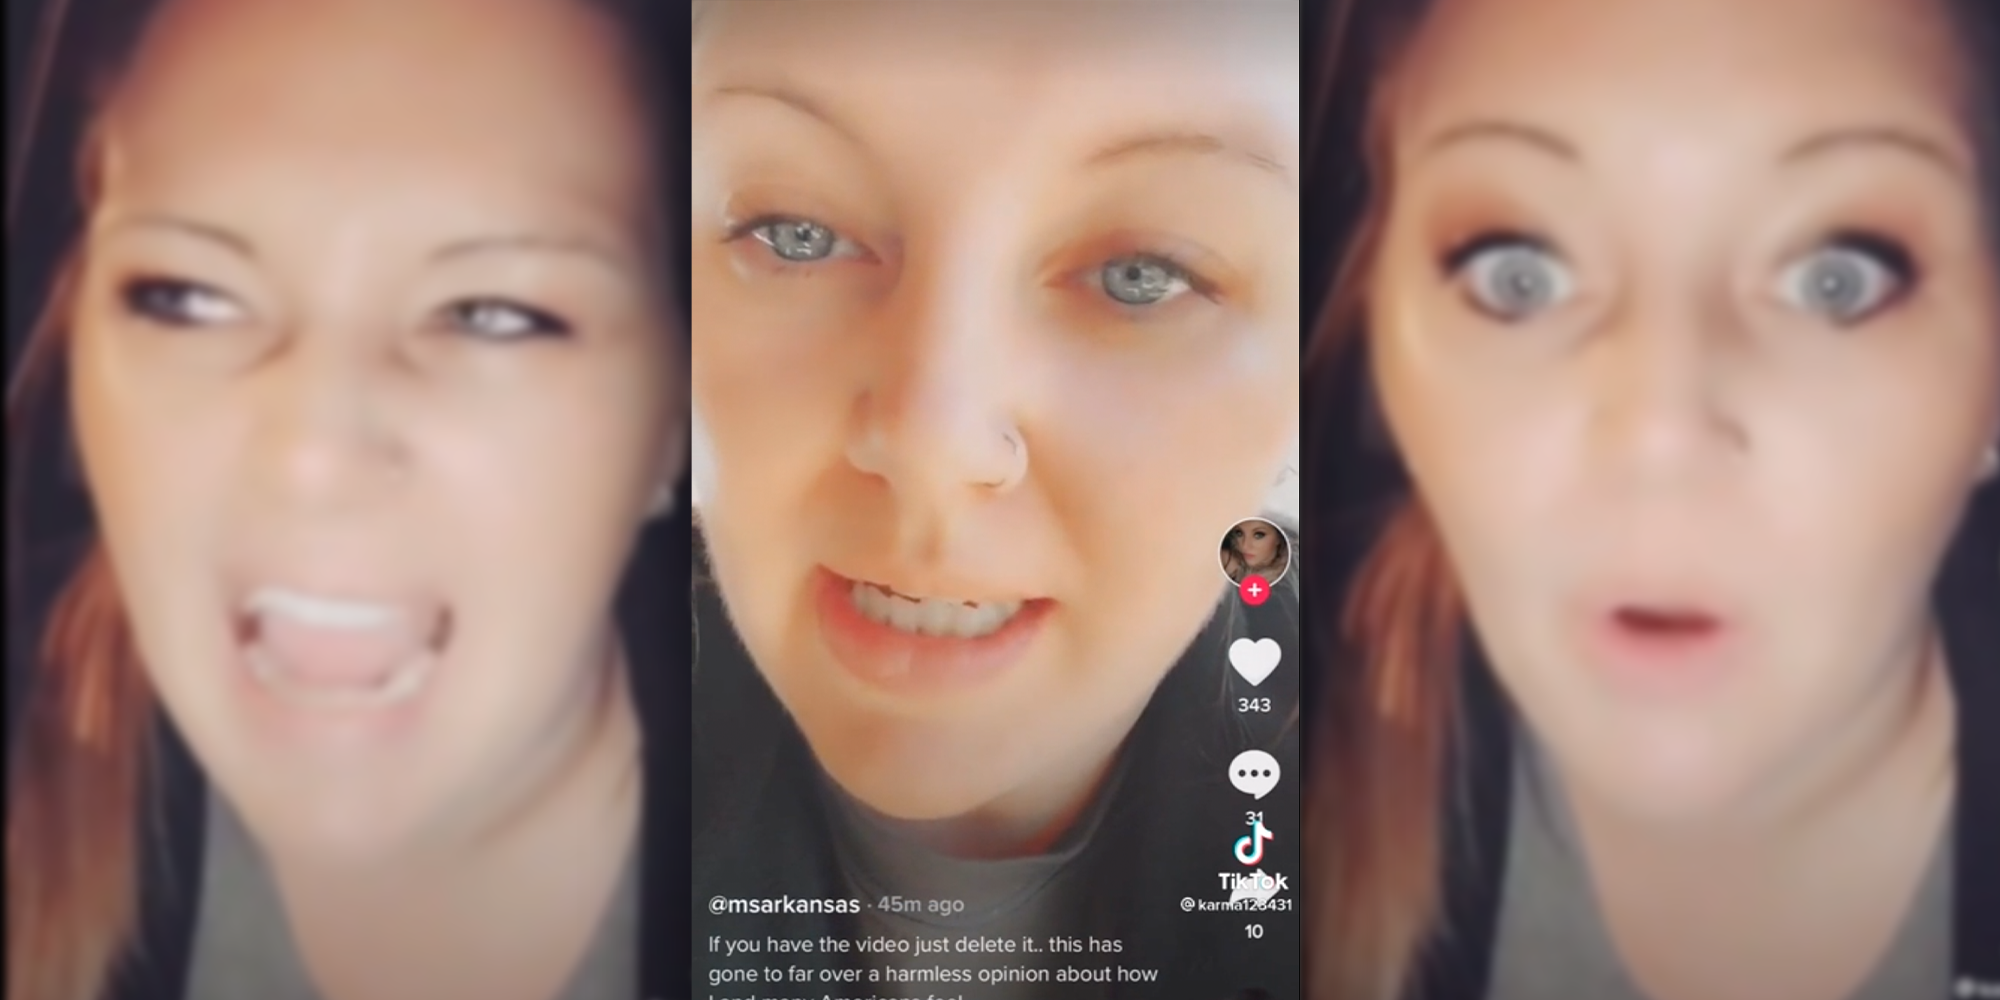 TikTok user says she was reported to law enforcement for threatening Mike Pence.